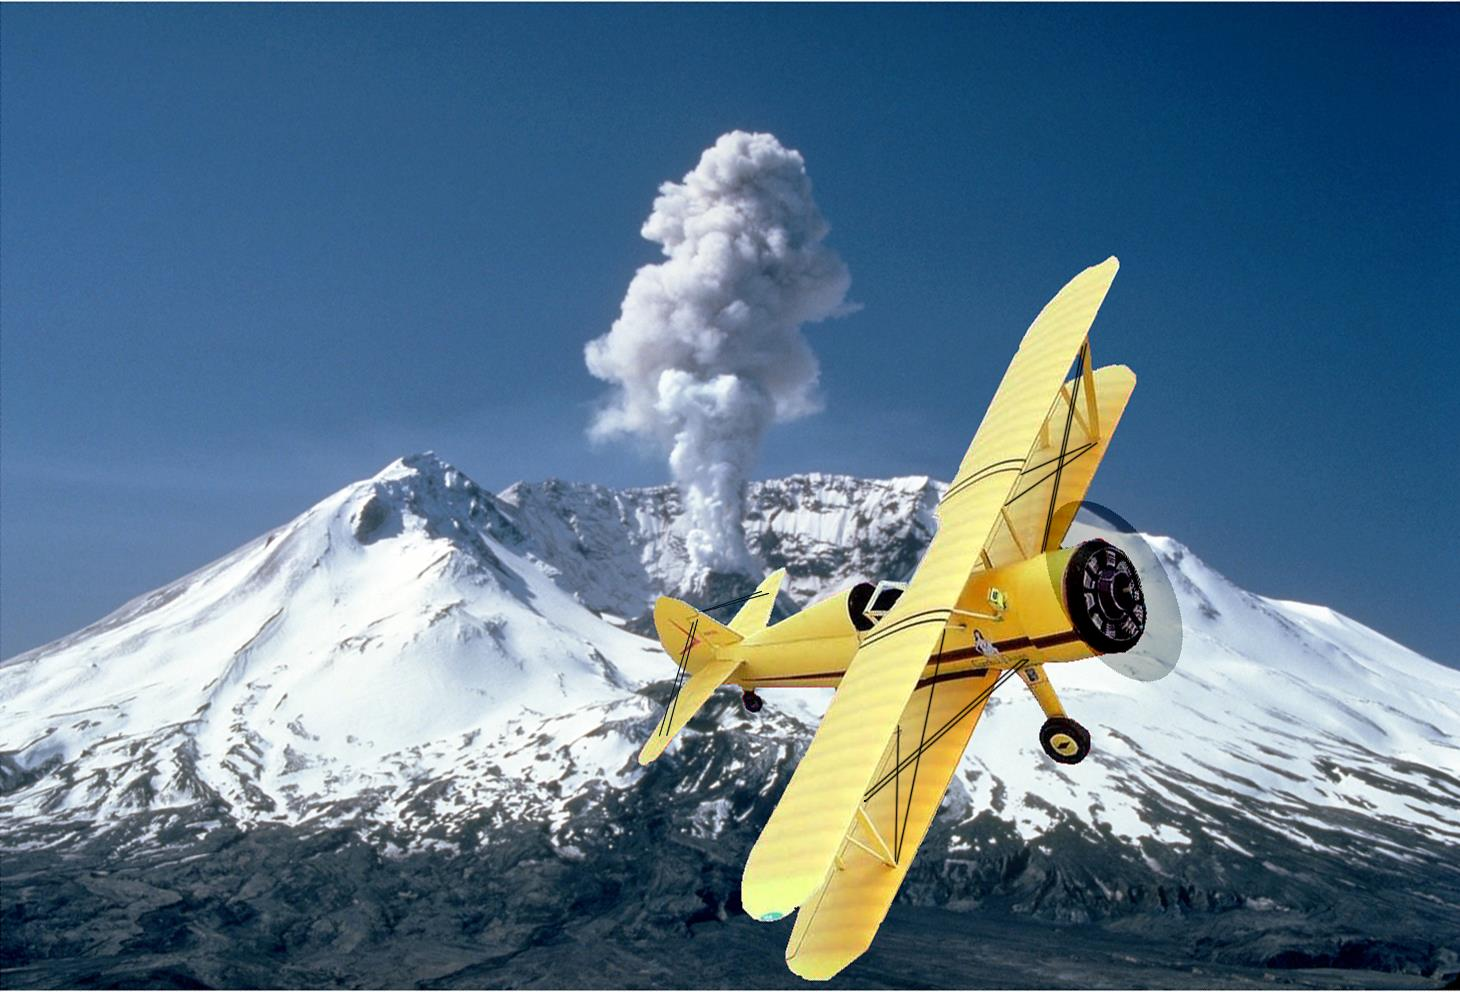 Papercraft imprimible y armable del Boeing P-17 Stearman. Manualidades a Raudales.